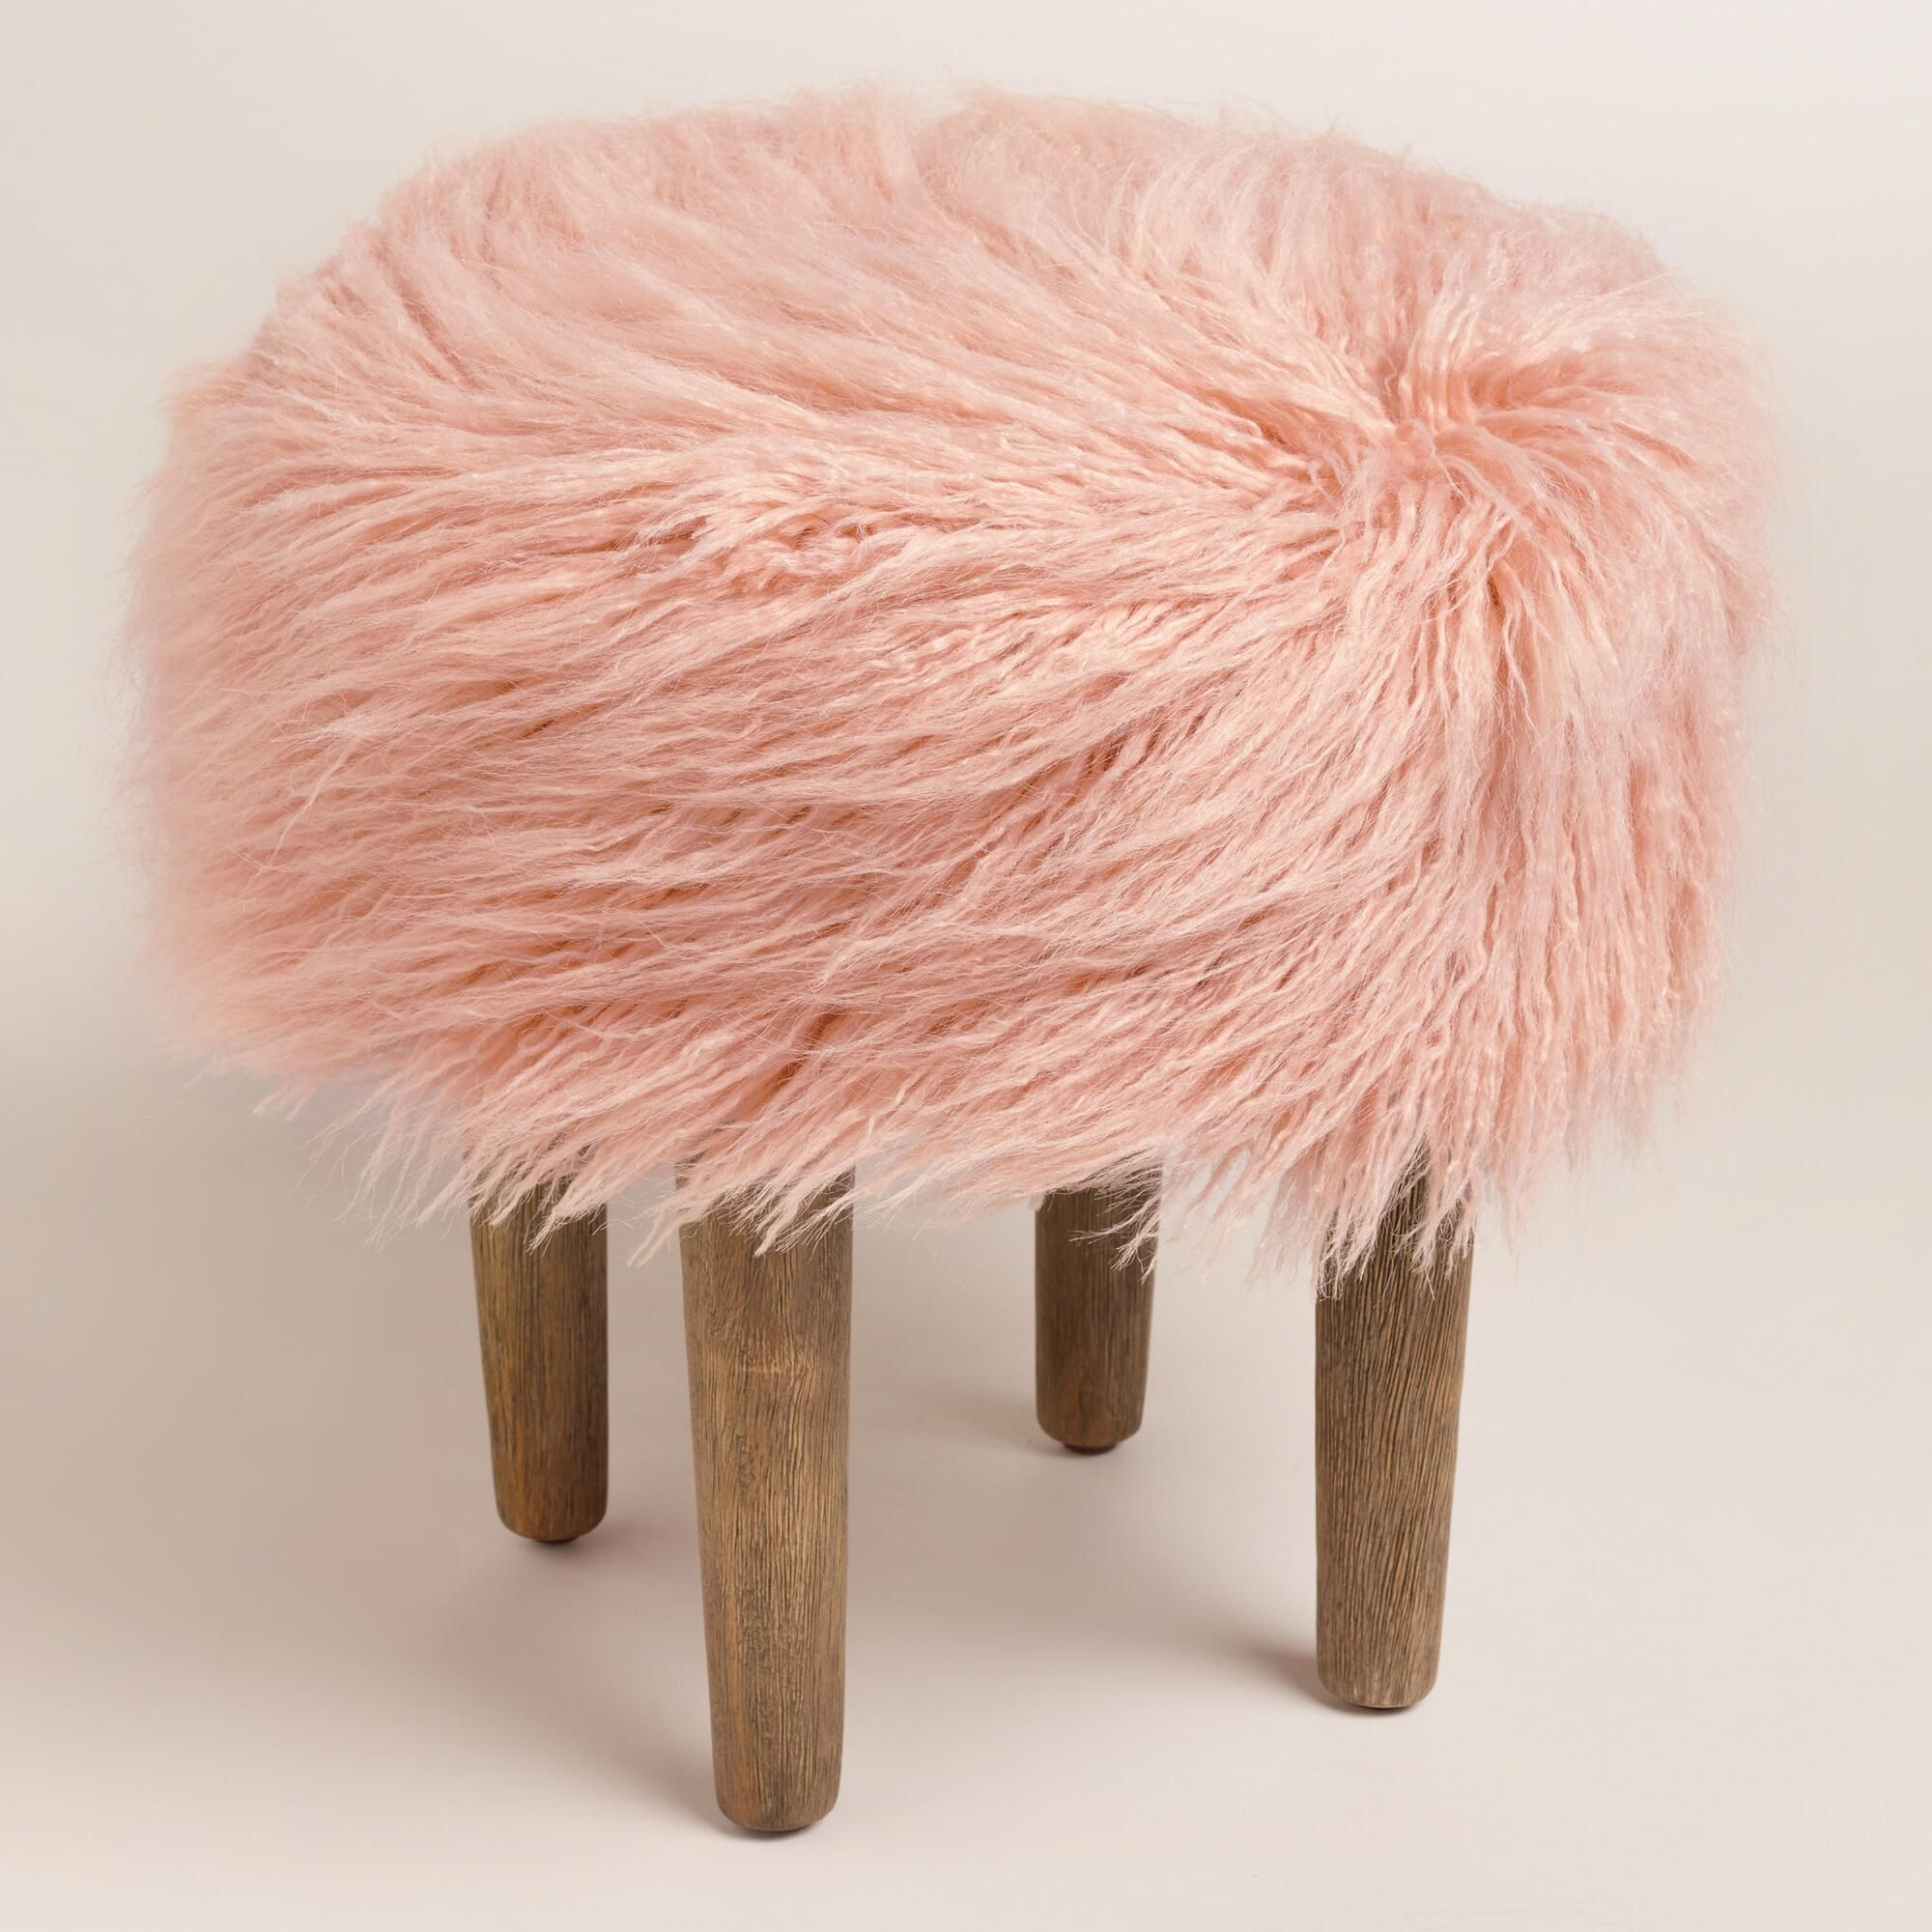 Featuring A Plush Soft Pink Faux Fur Top Inspired By The